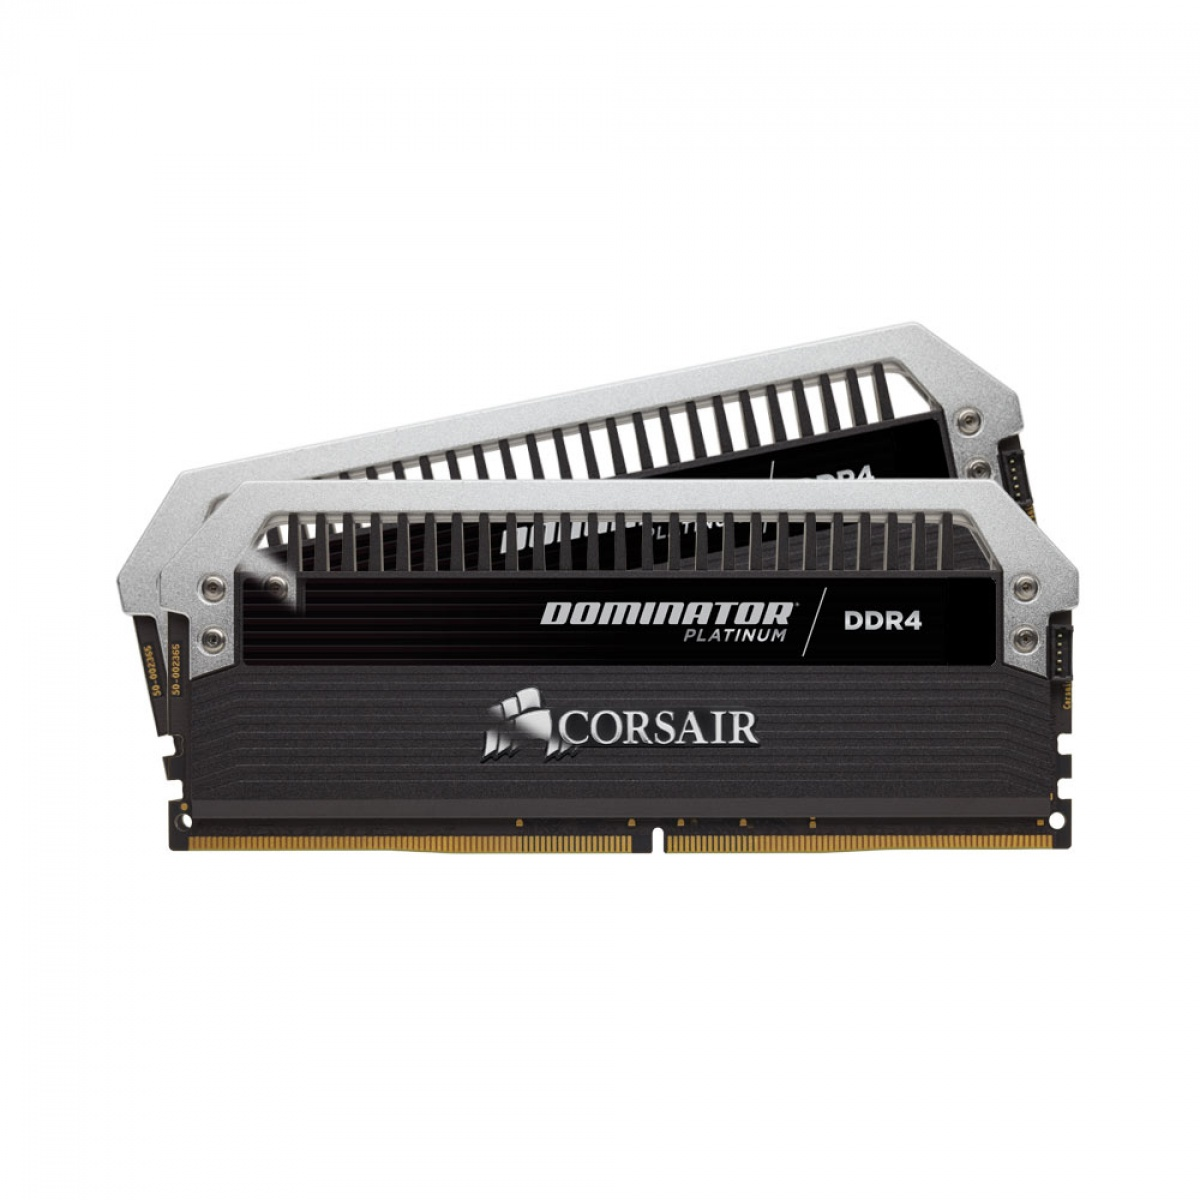 Memorie Dominator Platinum , DDR4, 2 x 8 GB, 3200 MHz, CL16, kit